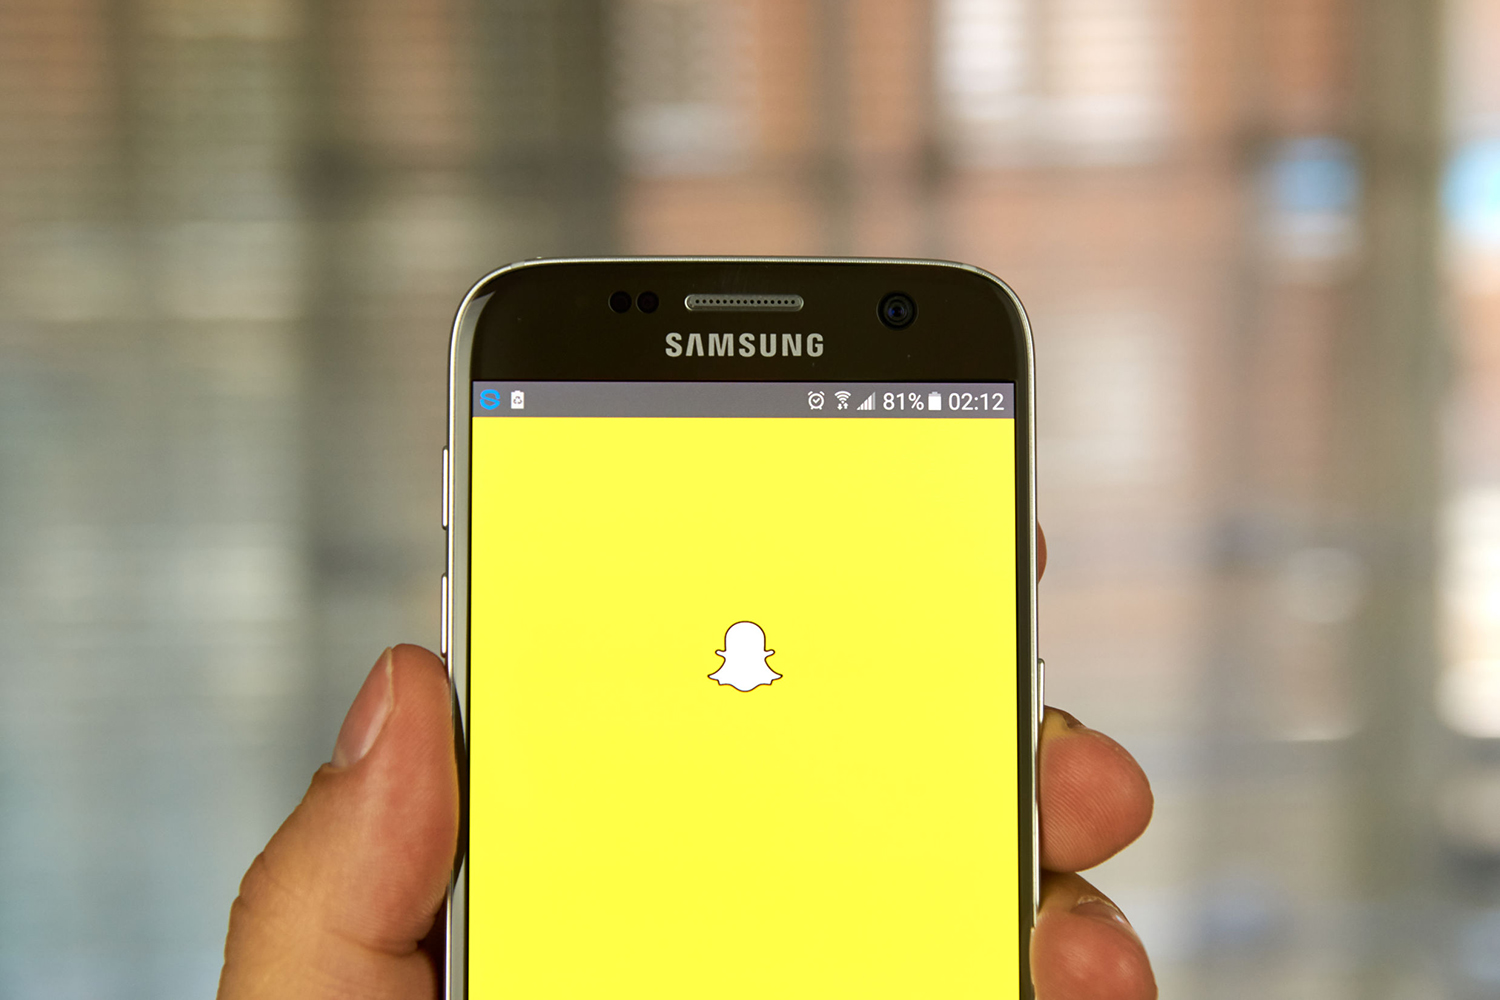 Snapchat Closing Local Stories Feature, Cutting Jobs To Focus On Live Events